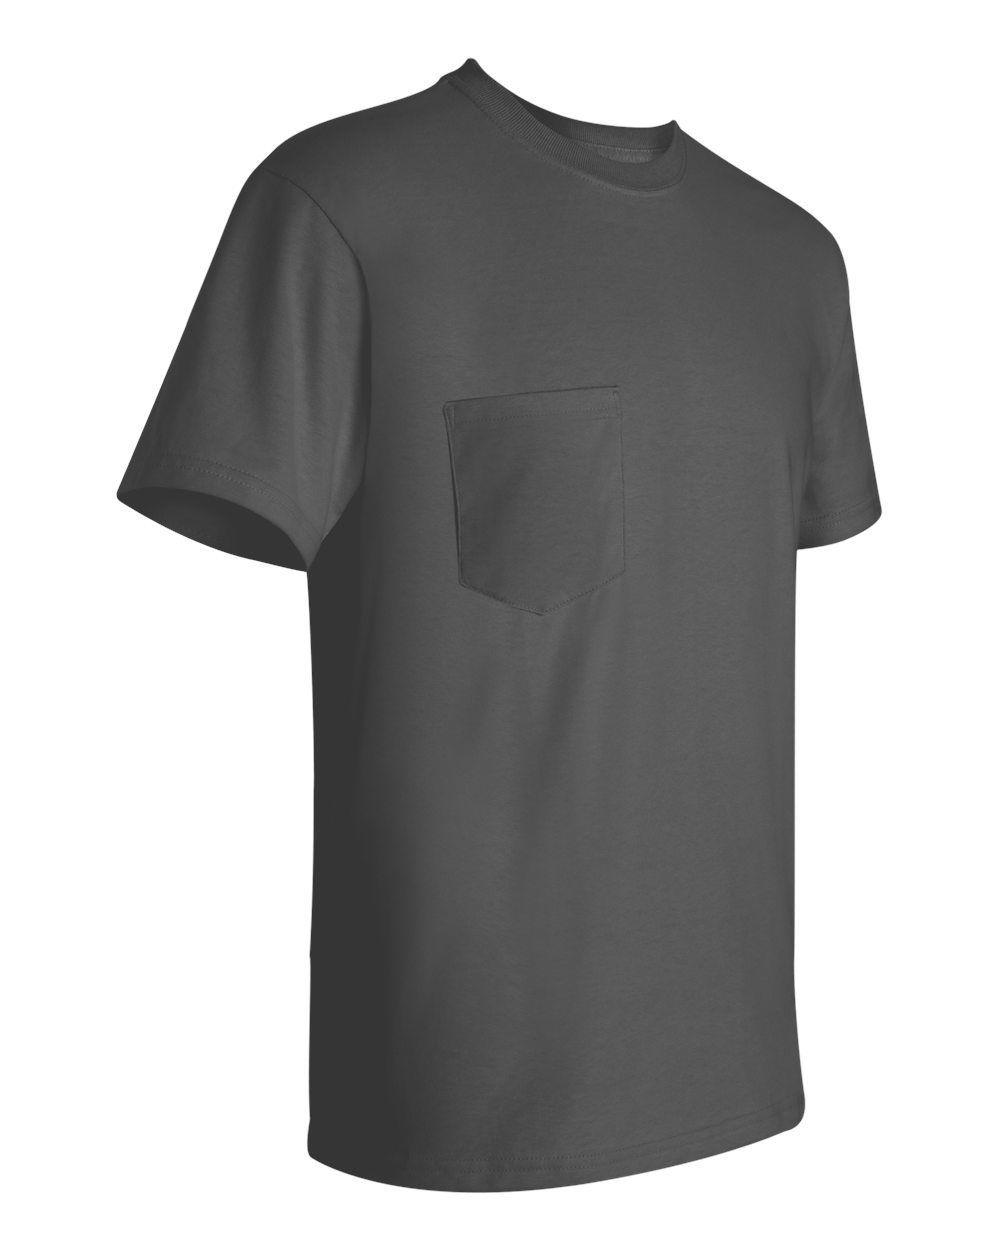 Gildan NEW S-XL 2XL 5XL Cotton